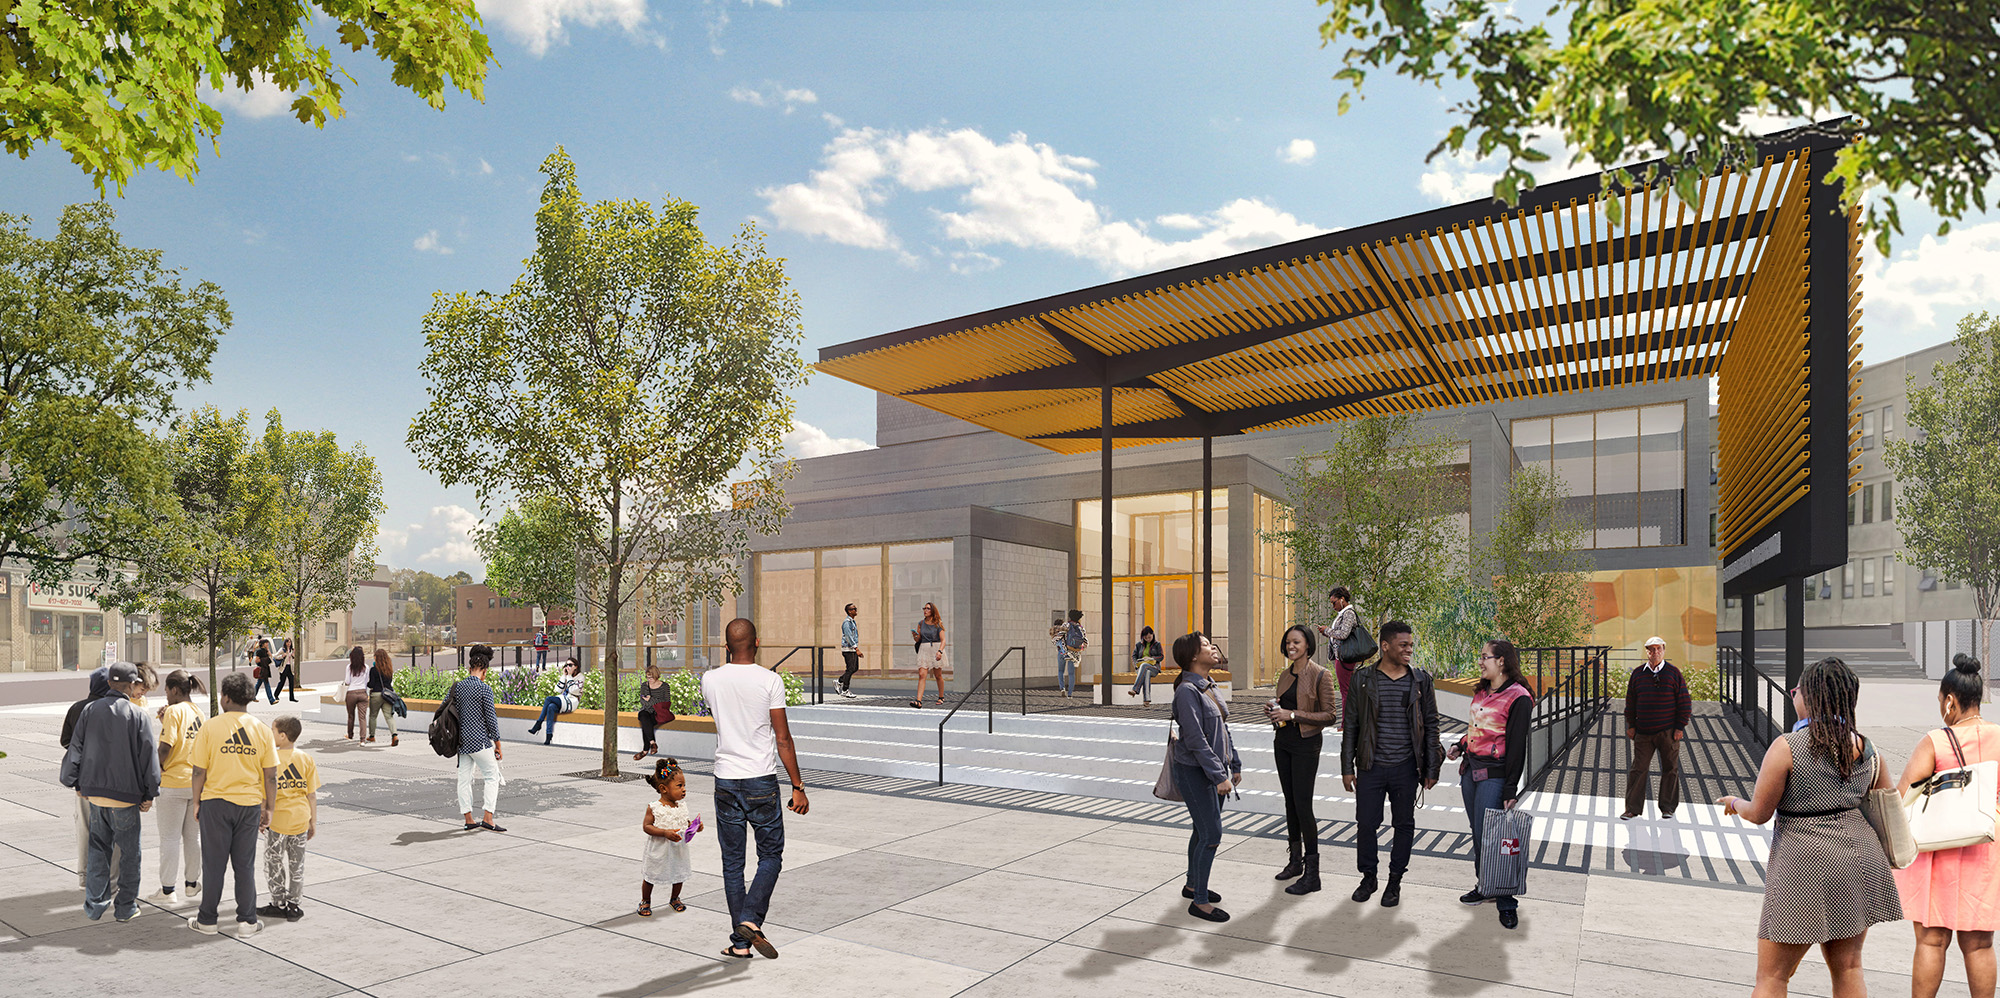 Dudley Branch of the Boston Public Library voted Boston's Best New Development!